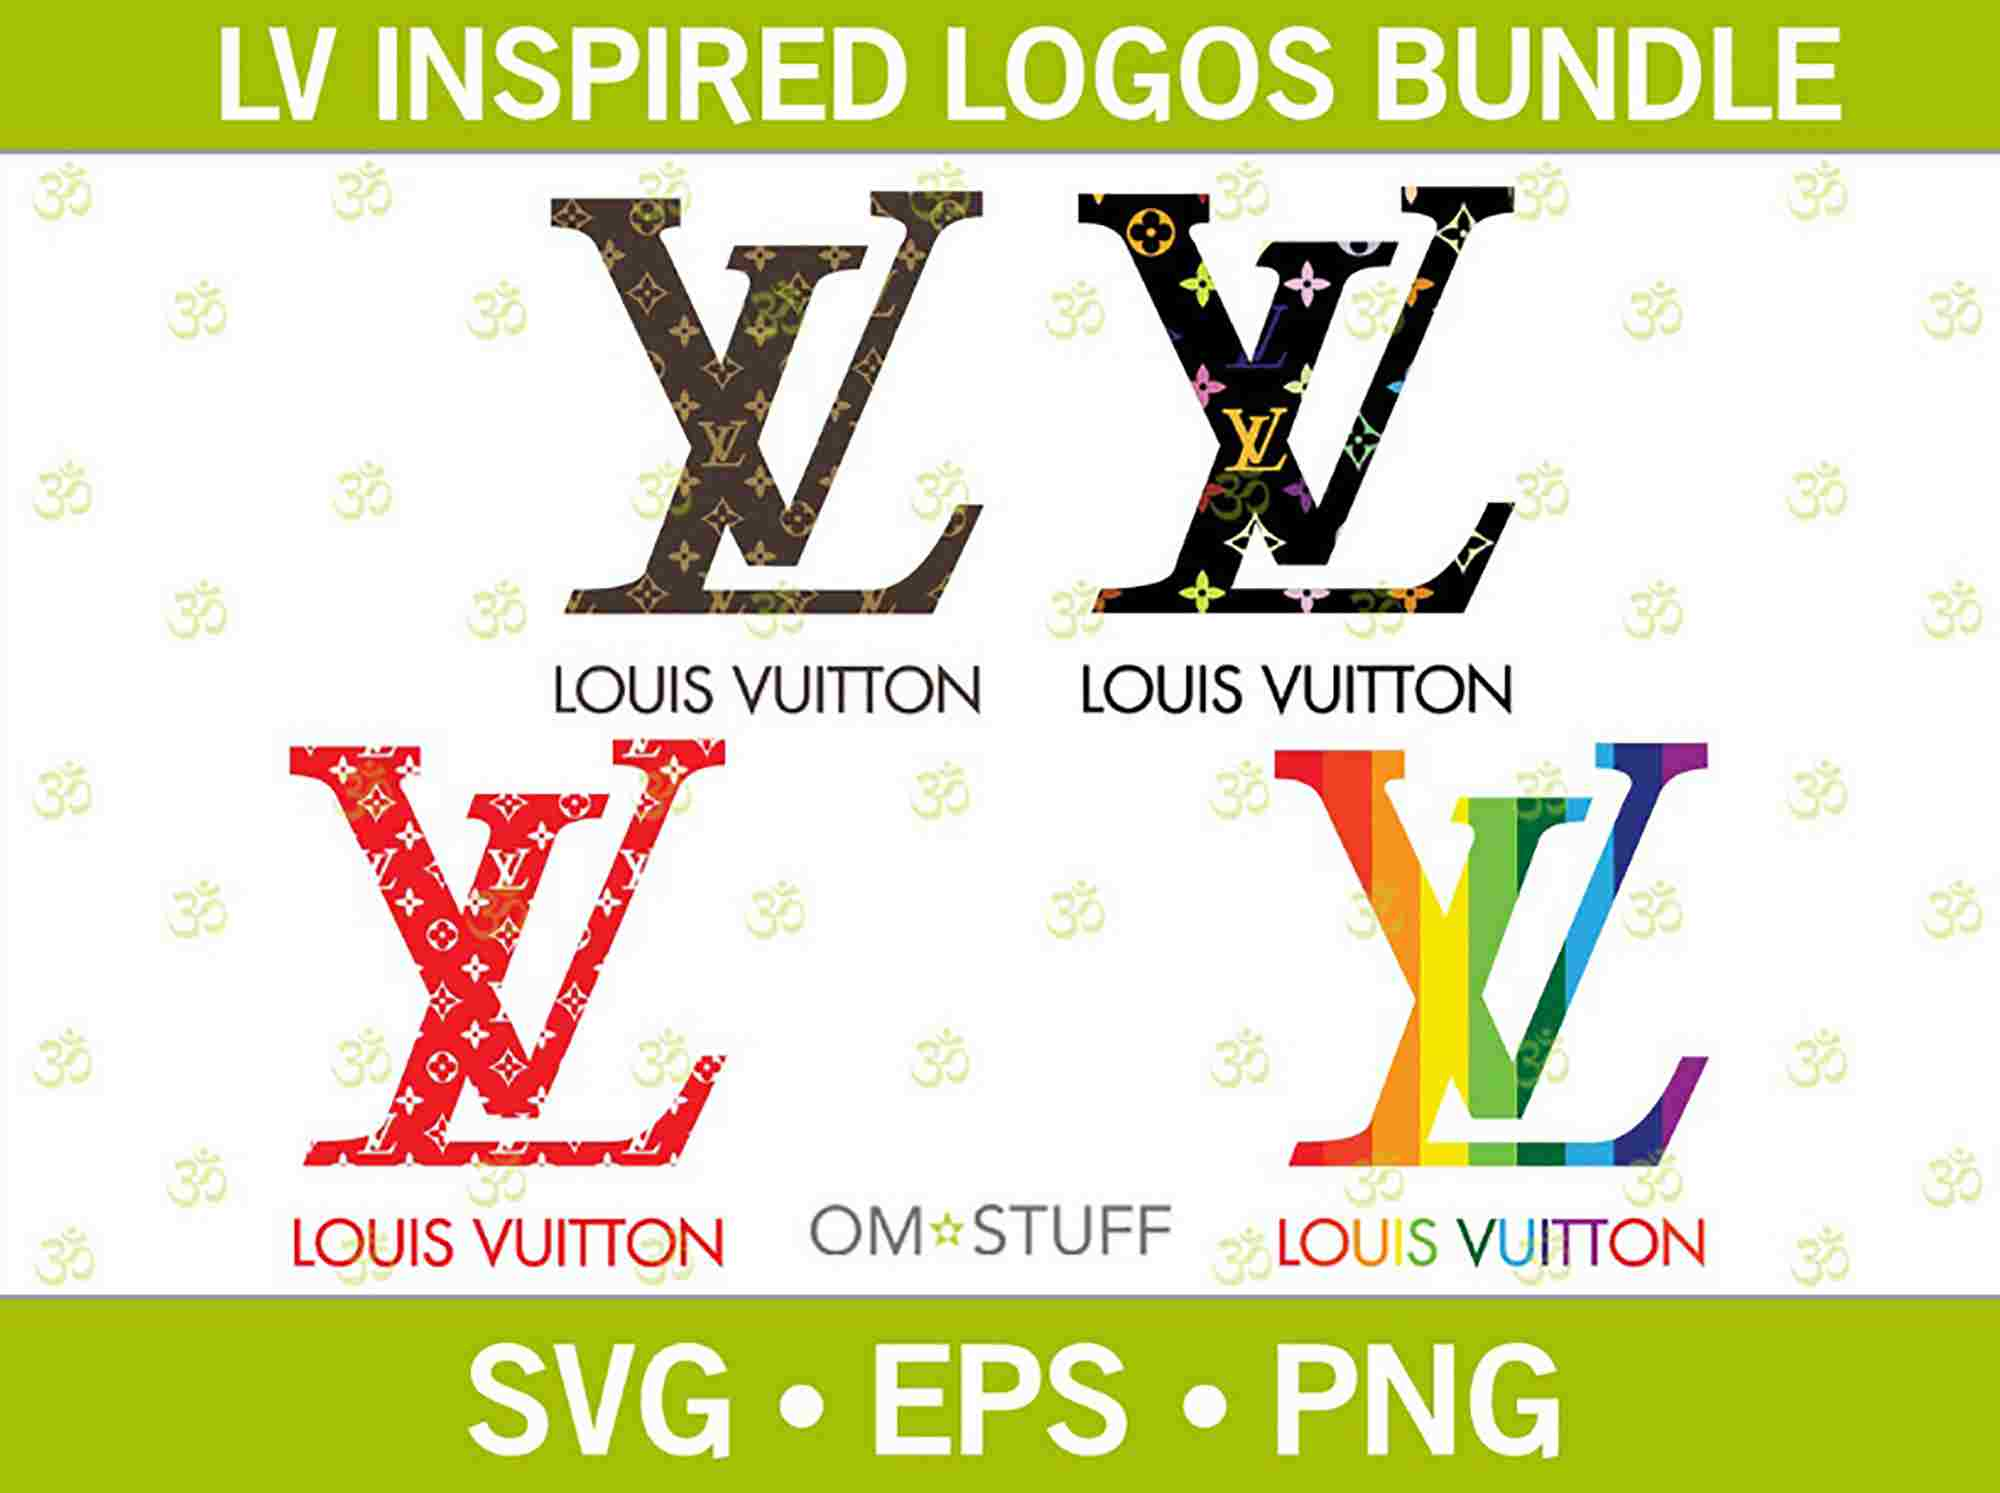 Louis Vuitton Svg Bundle Louis Vuitton Svg Louis Vuitton Logo